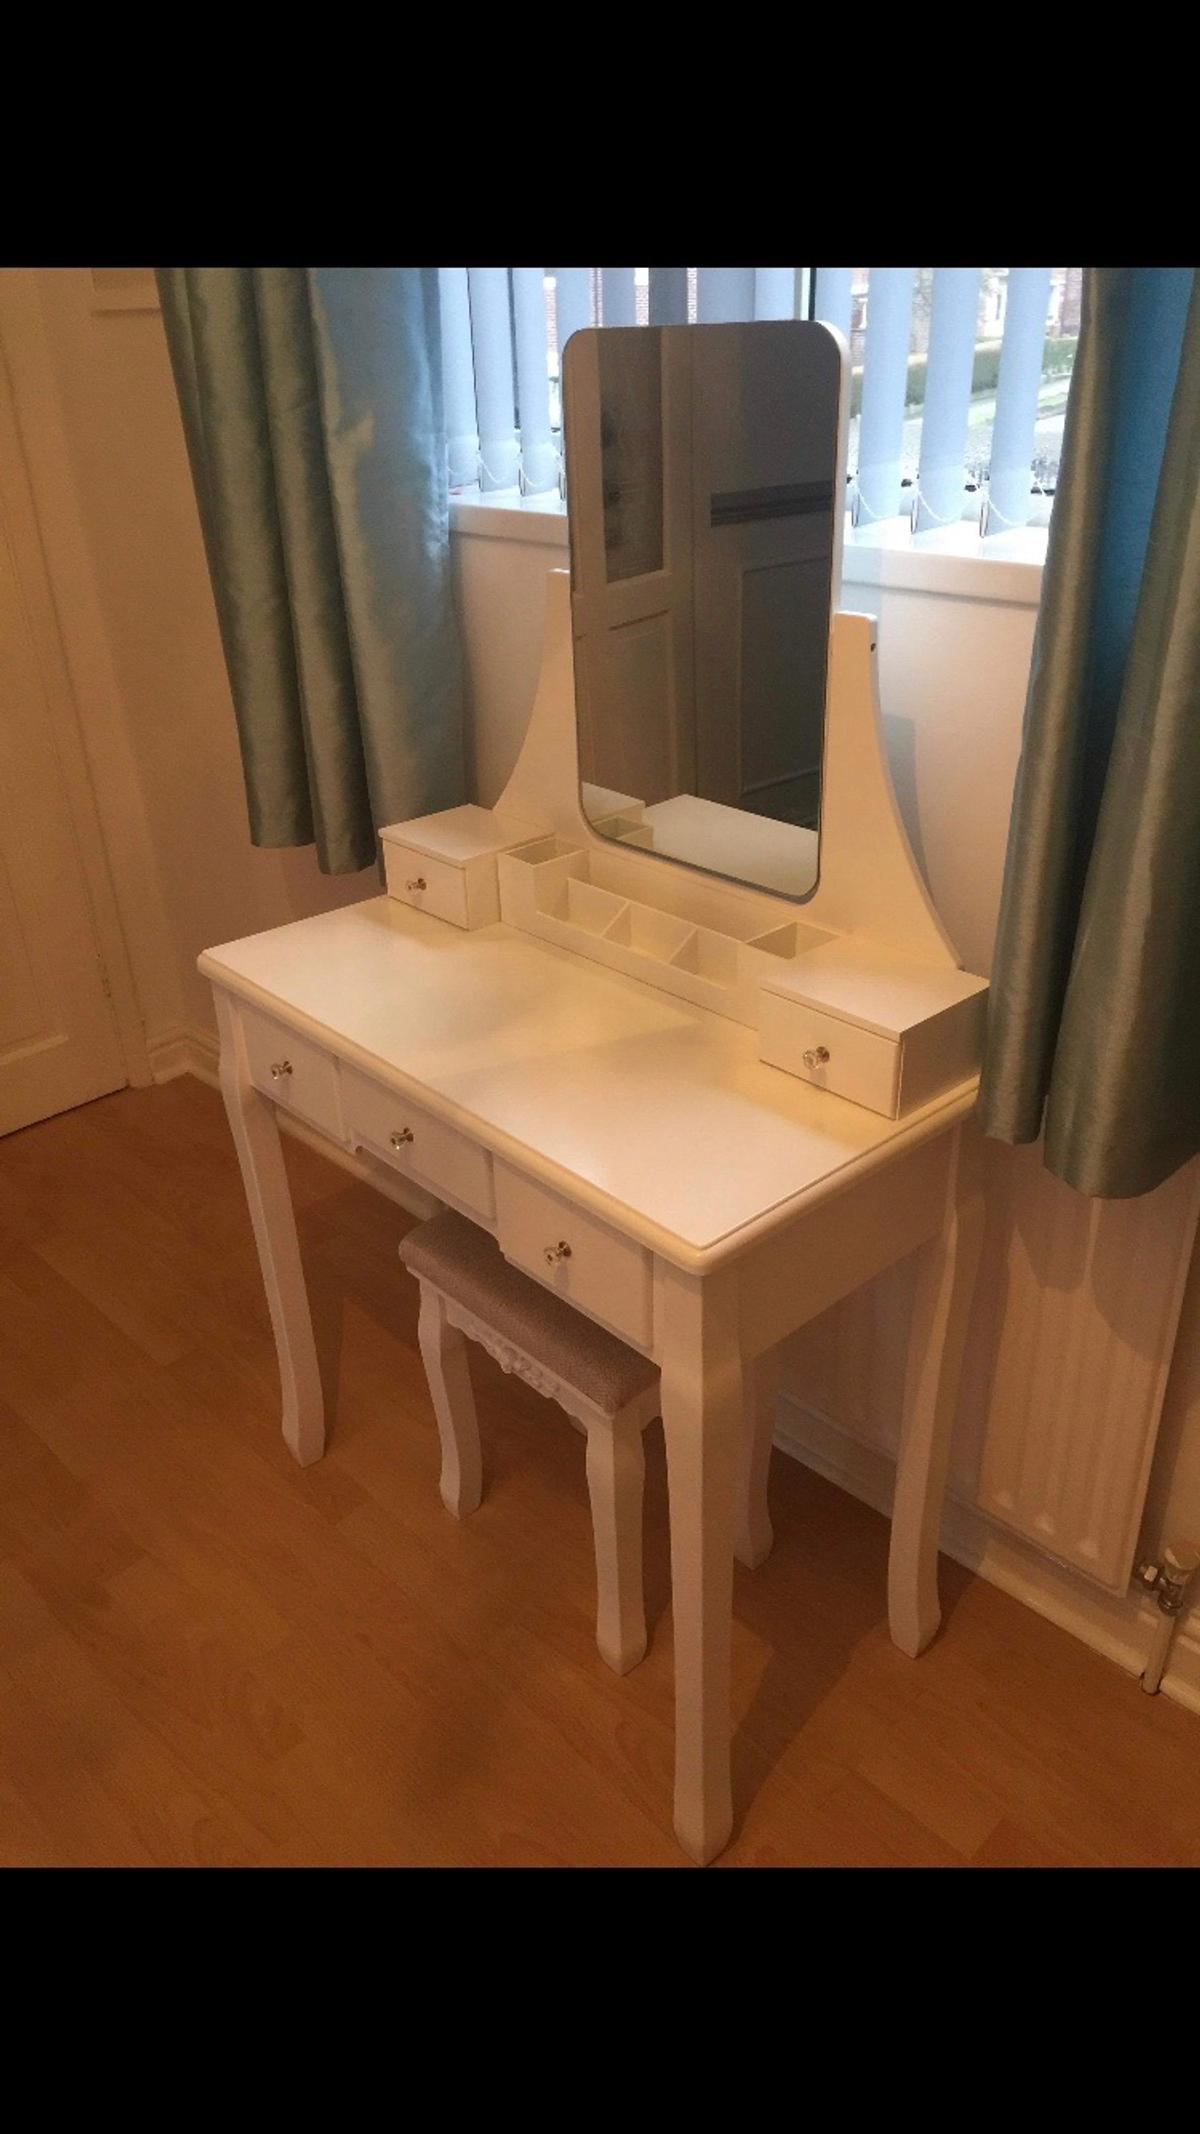 Beautiful dressing table & chair for sale.  Excellent condition. Will compliment any bedroom or dressing room.  Height (to table top) 75cm Height (to top of mirror) 135cm Width 79cm Dept 40cm  Collection from S12.